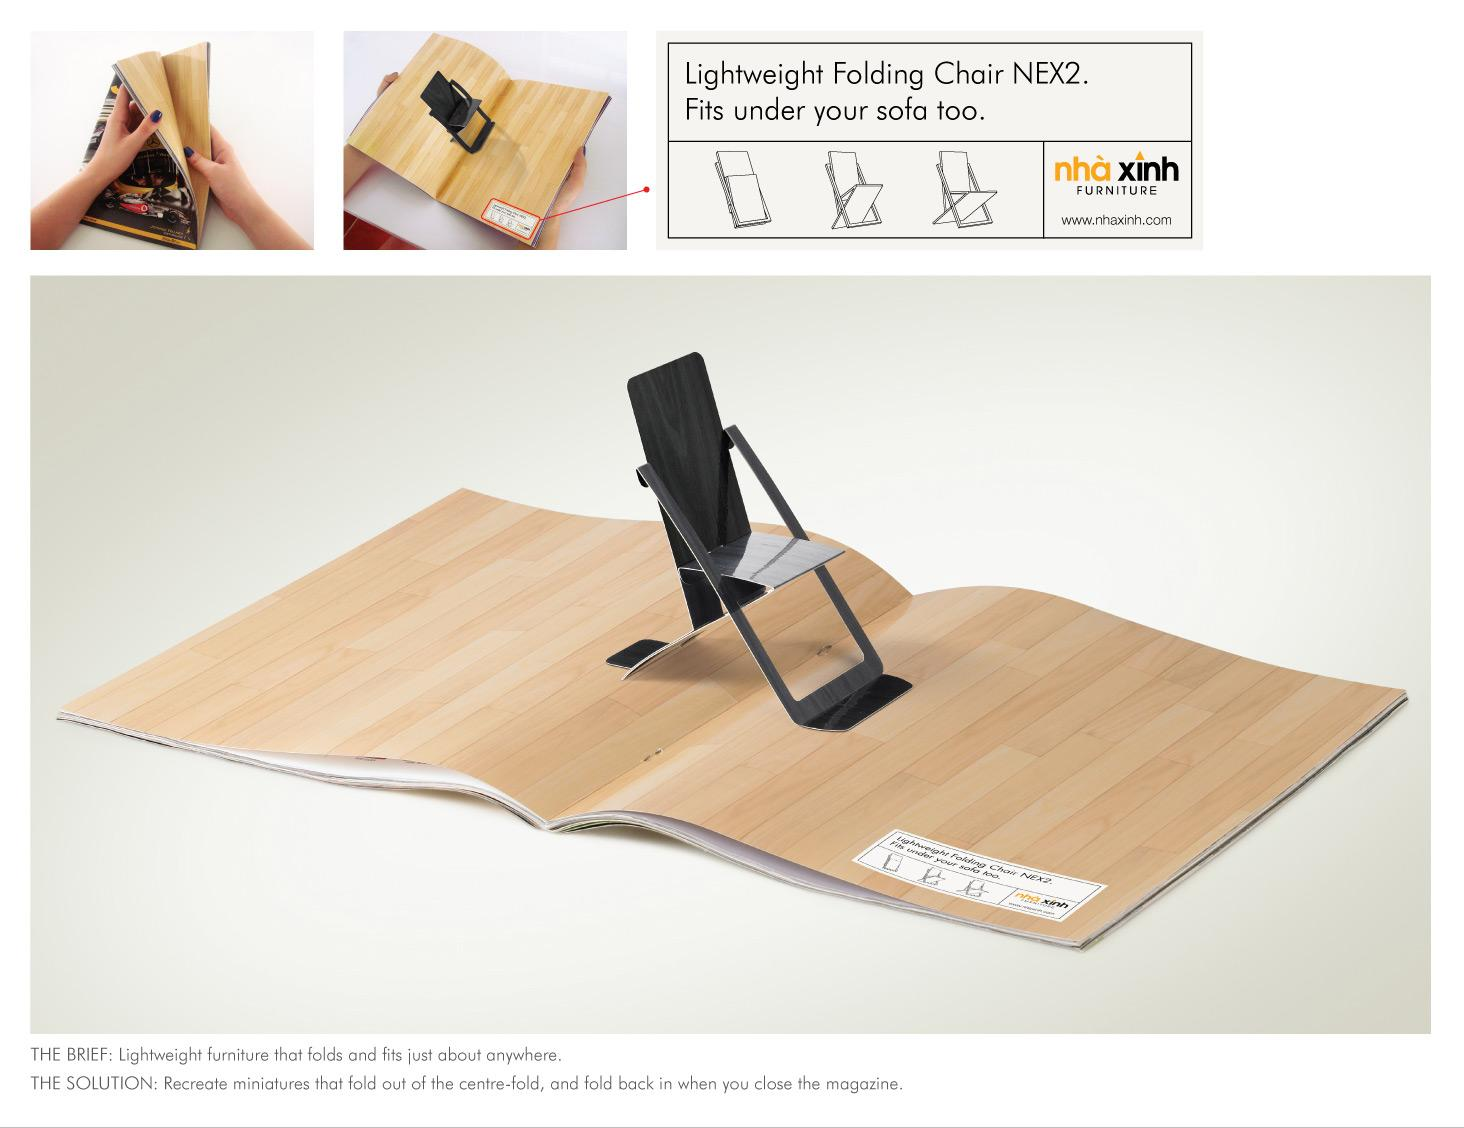 Nha xinh furniture print advert by grey folding chair for Sofa bed nha xinh